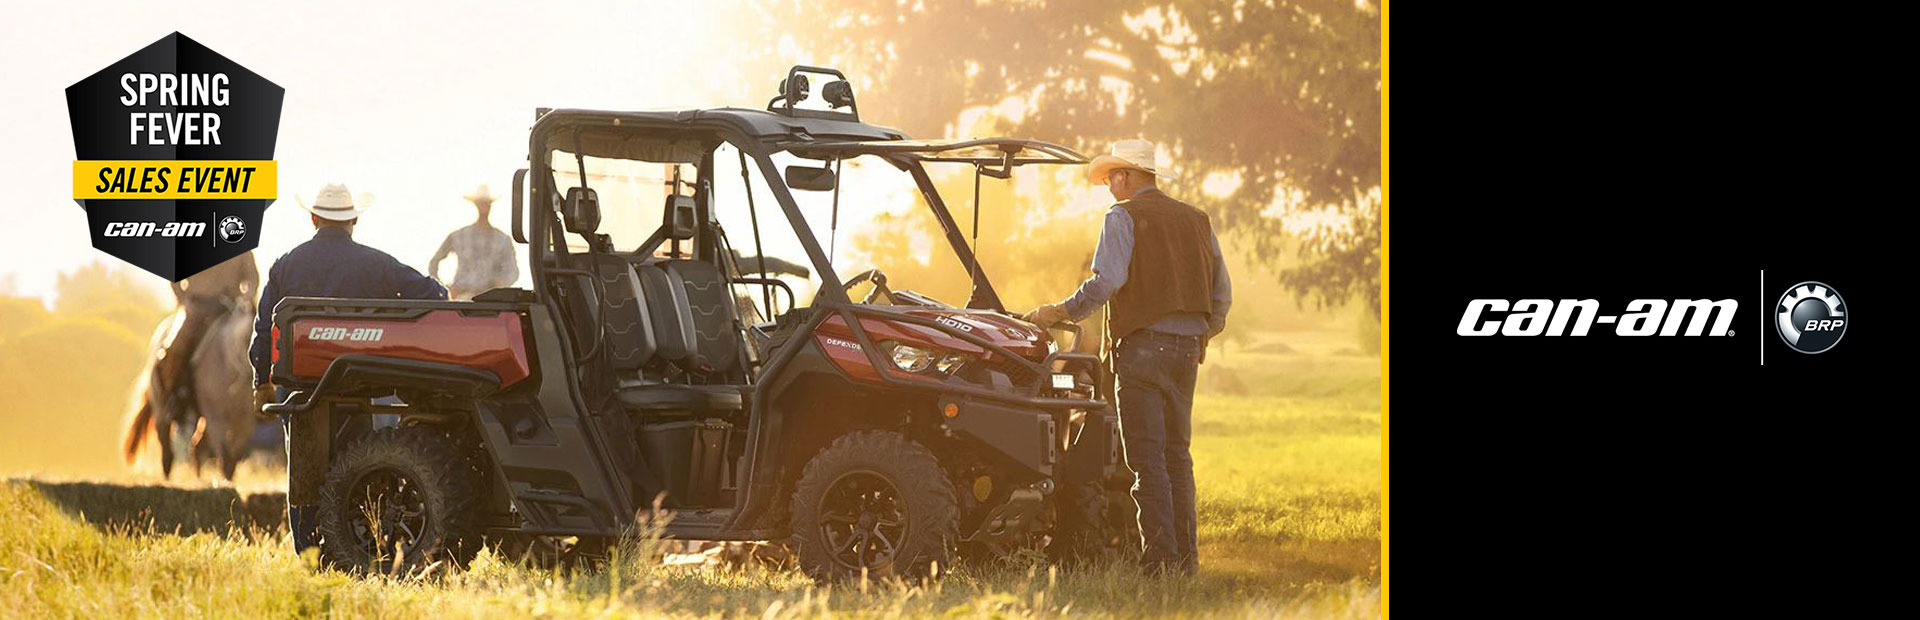 Can-Am: Spring Fever Sales Event-Defender